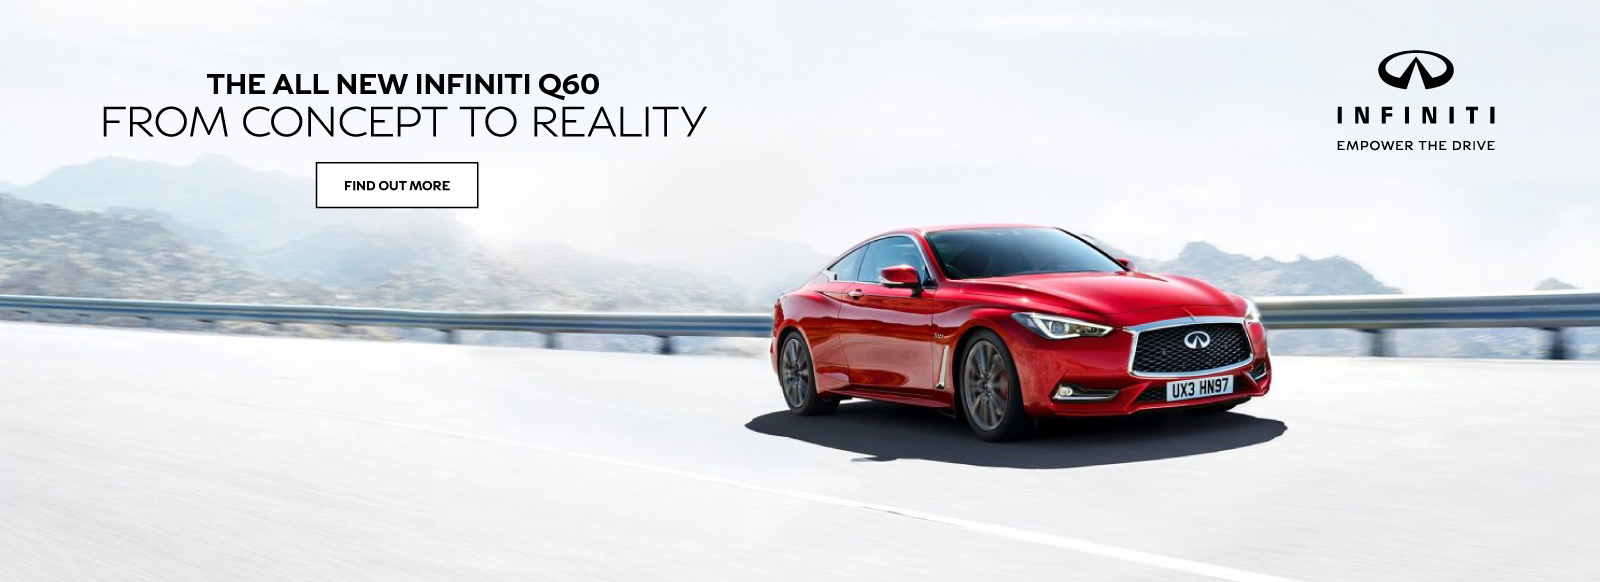 Infiniti Q60 Now Available